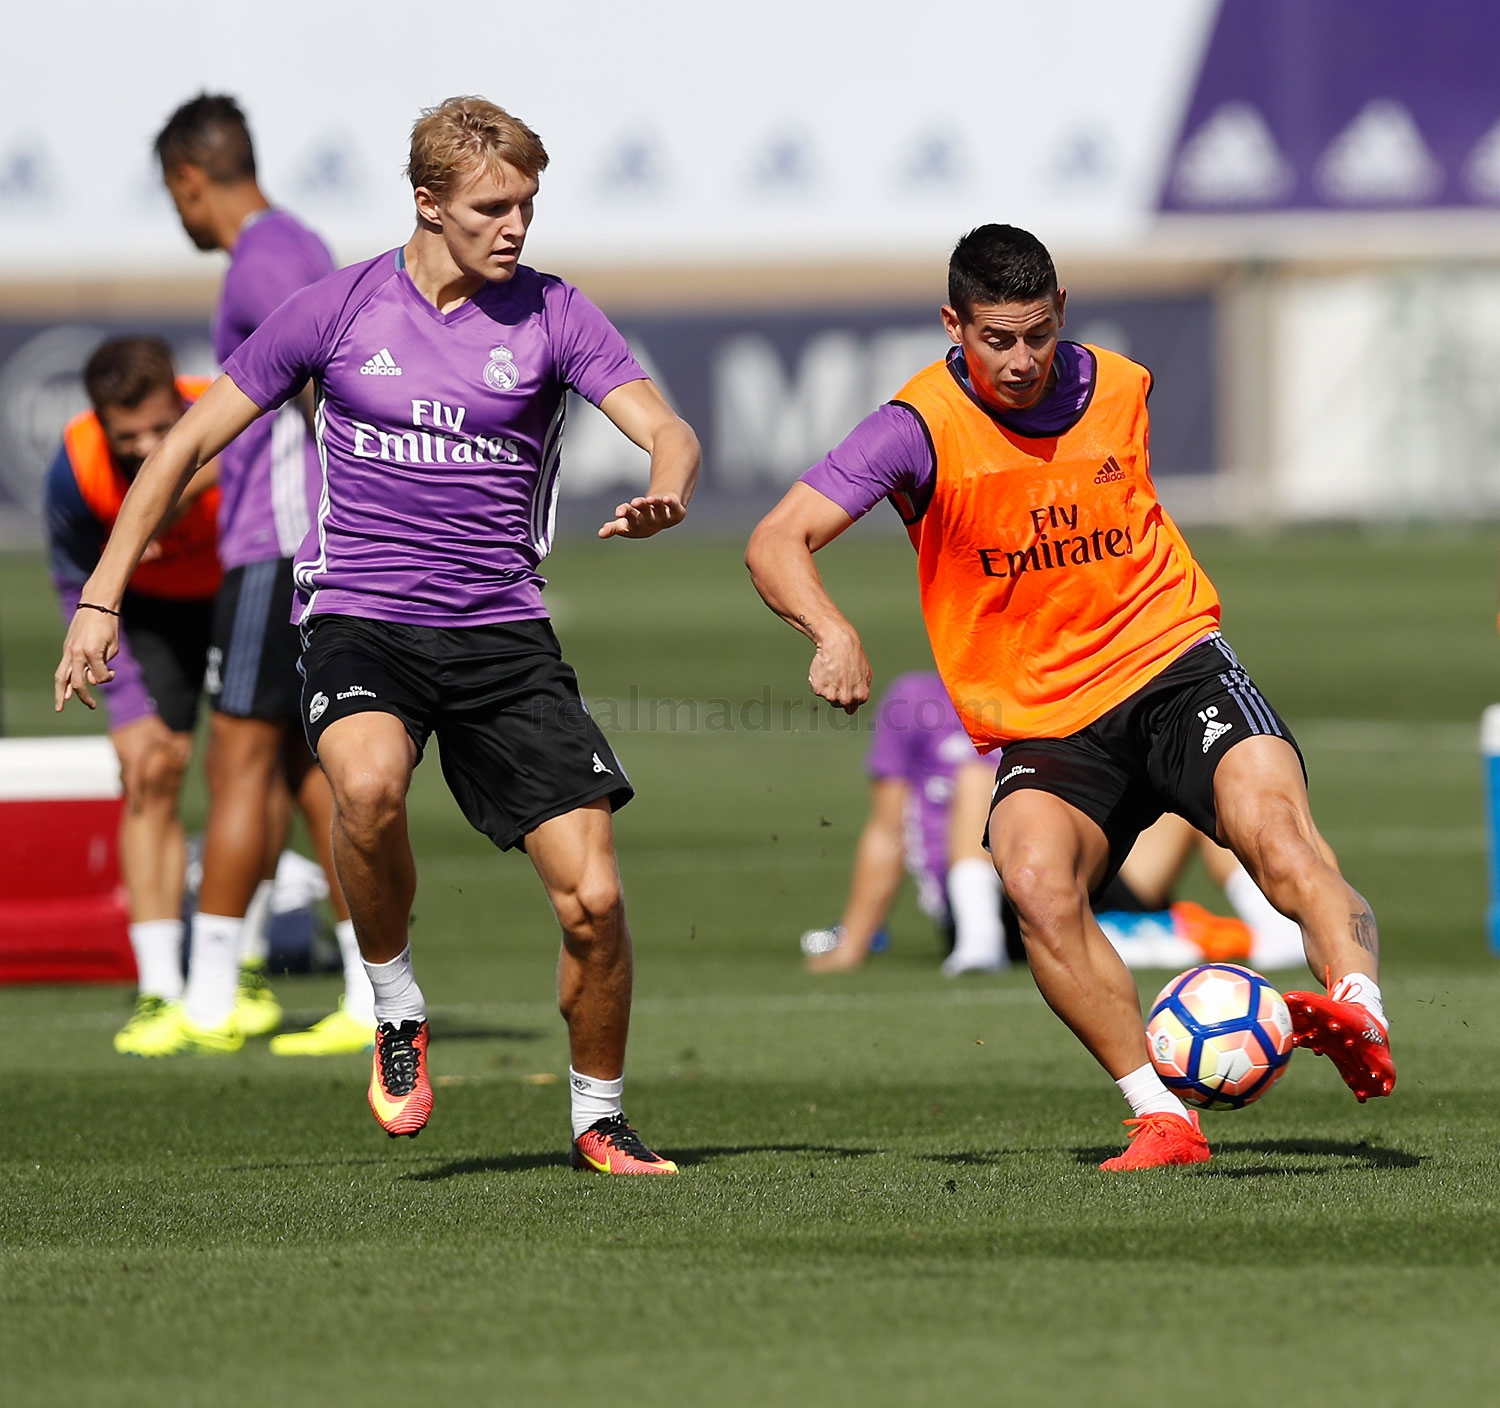 Real Madrid - Entrenamiento del Real Madrid - 16-09-2016